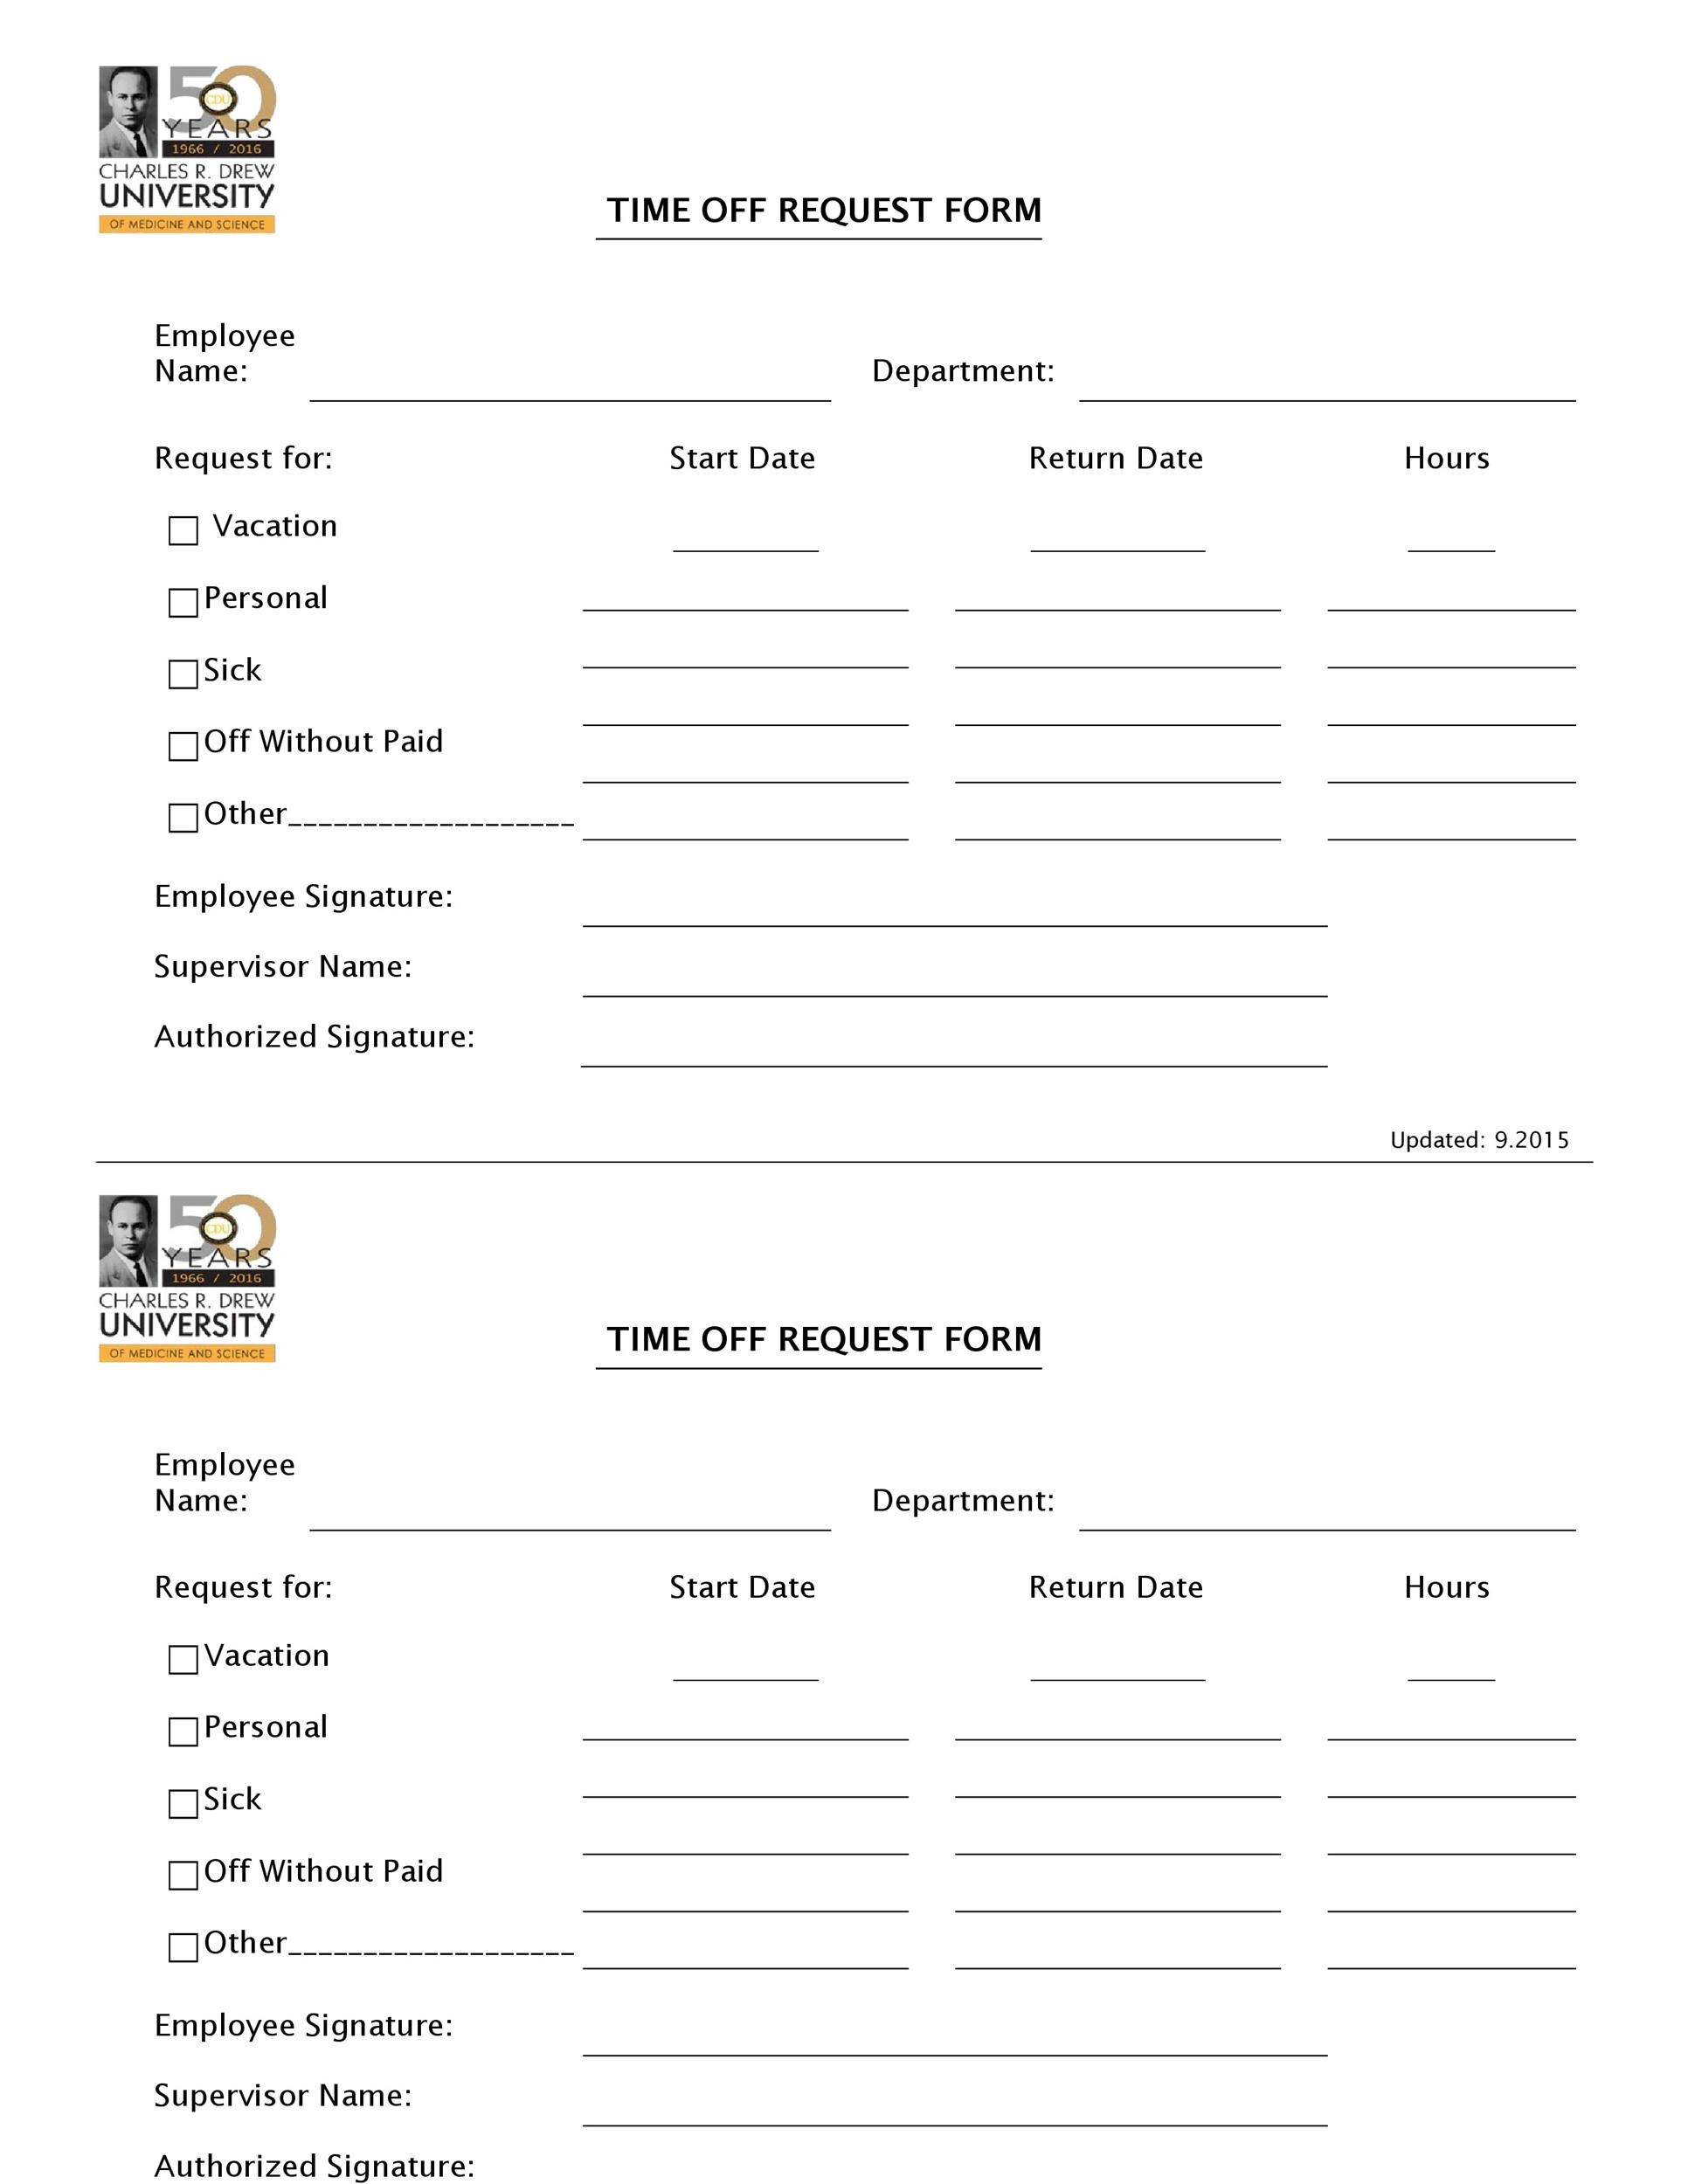 30+ Effective Time Off Request Forms & Templates ᐅ TemplateLab